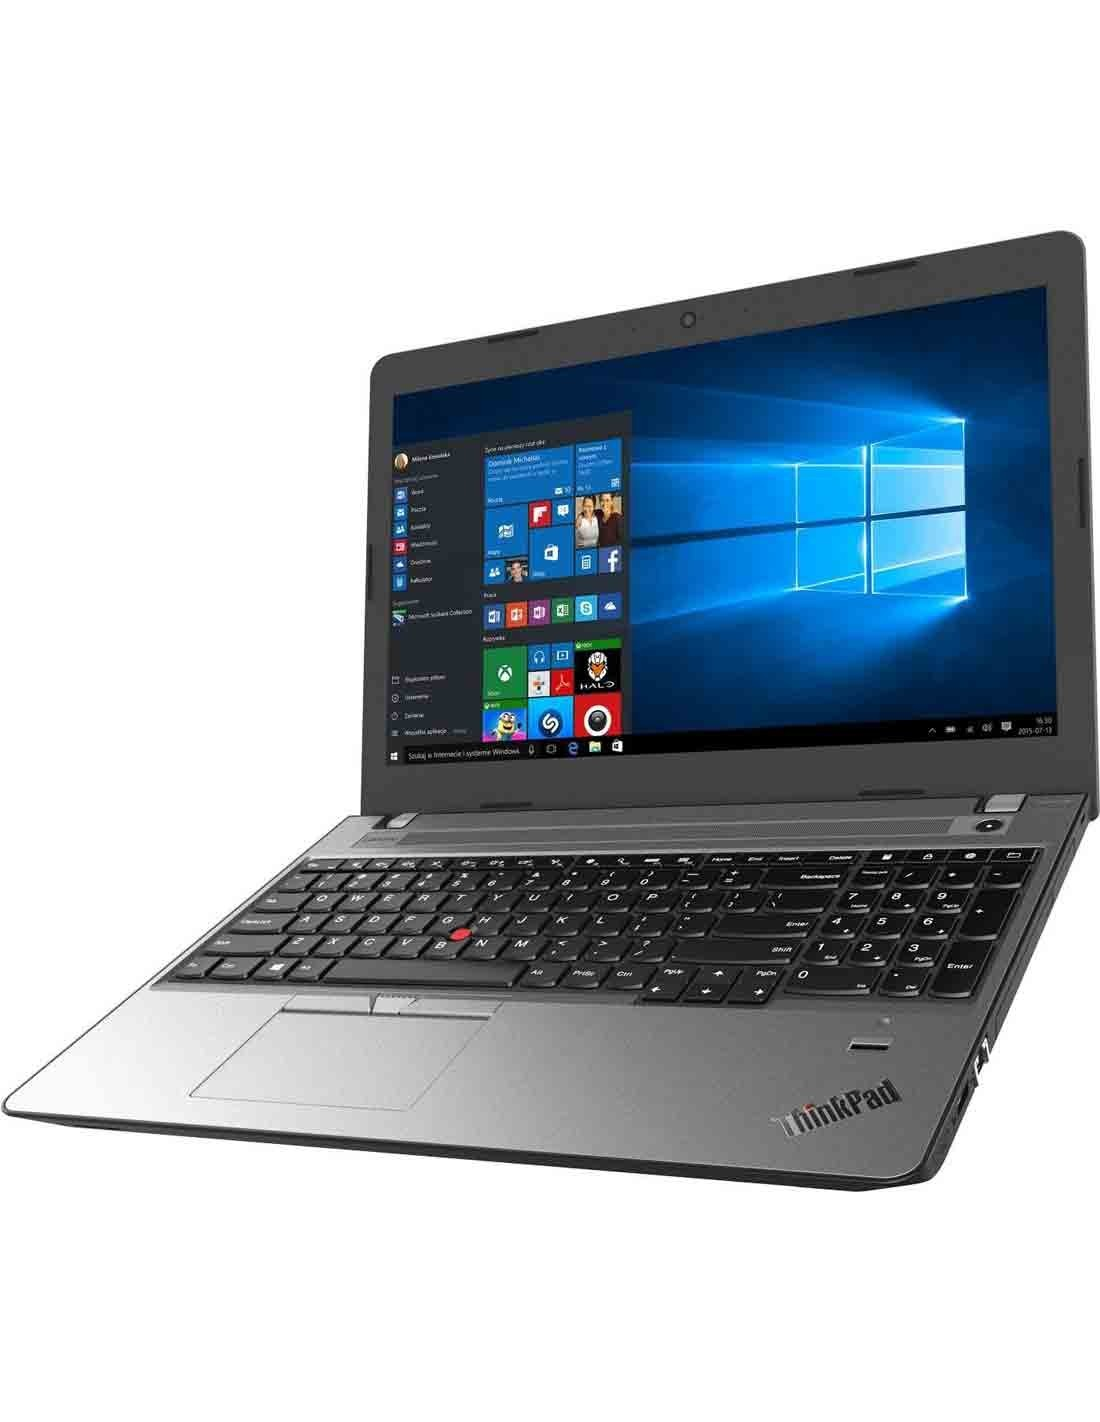 Lenovo Thinkpad E570 Core i5 Which is a Powerful Business Notebook at an Affordable Price